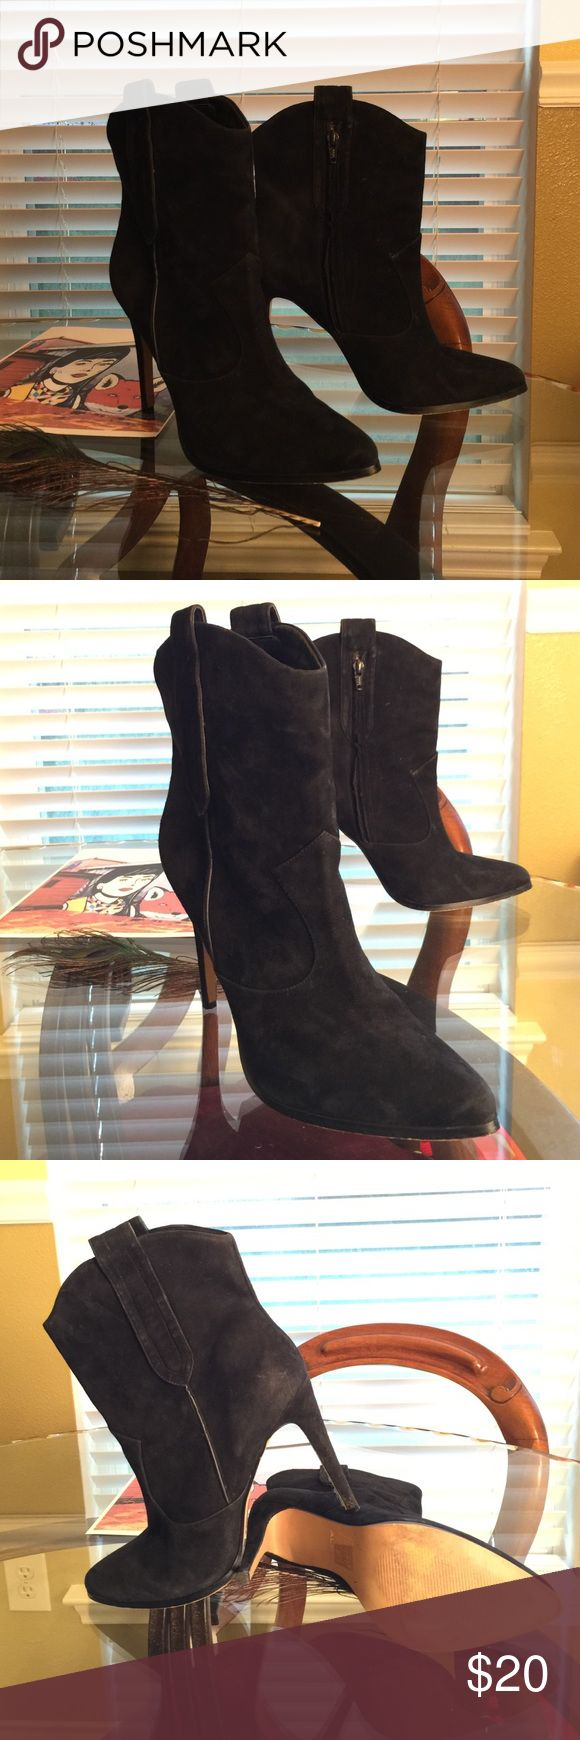 Aldo Black Stiletto Boots These are black Aldo boots leather very hip worn a few times does show a little bit of wear but still look great. Aldo Shoes Heeled Boots